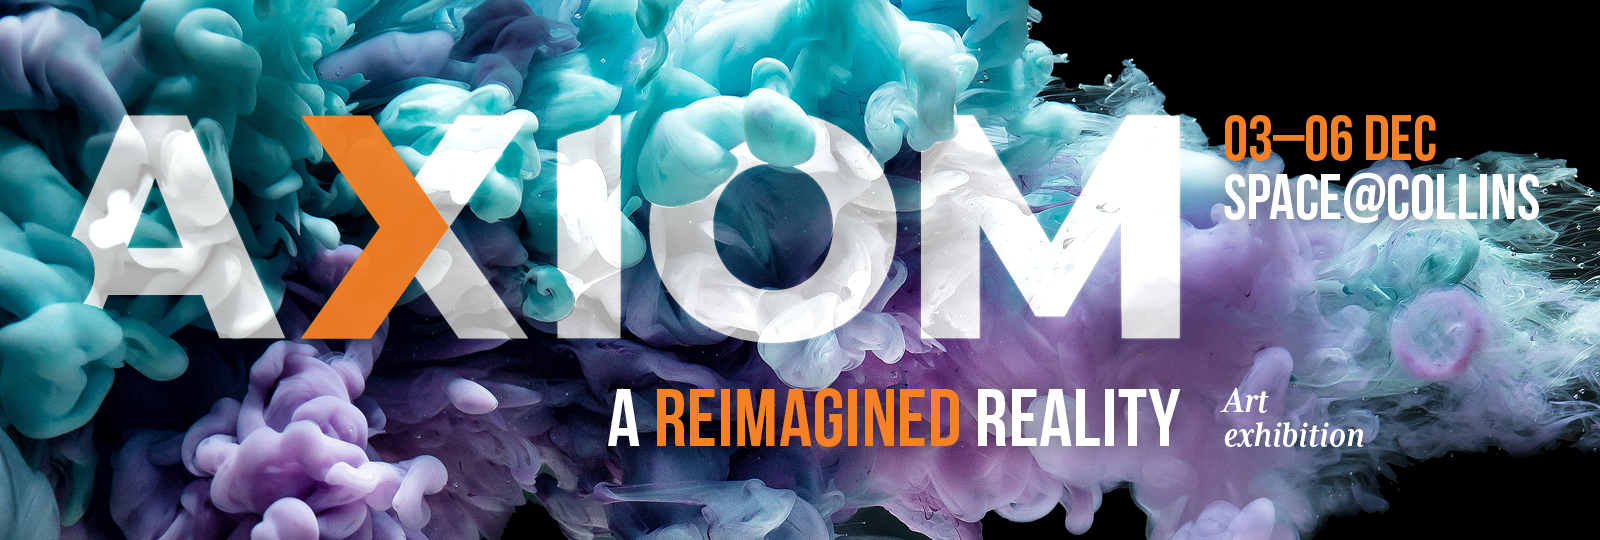 Axiom: A Reimagined Reality art exhibition